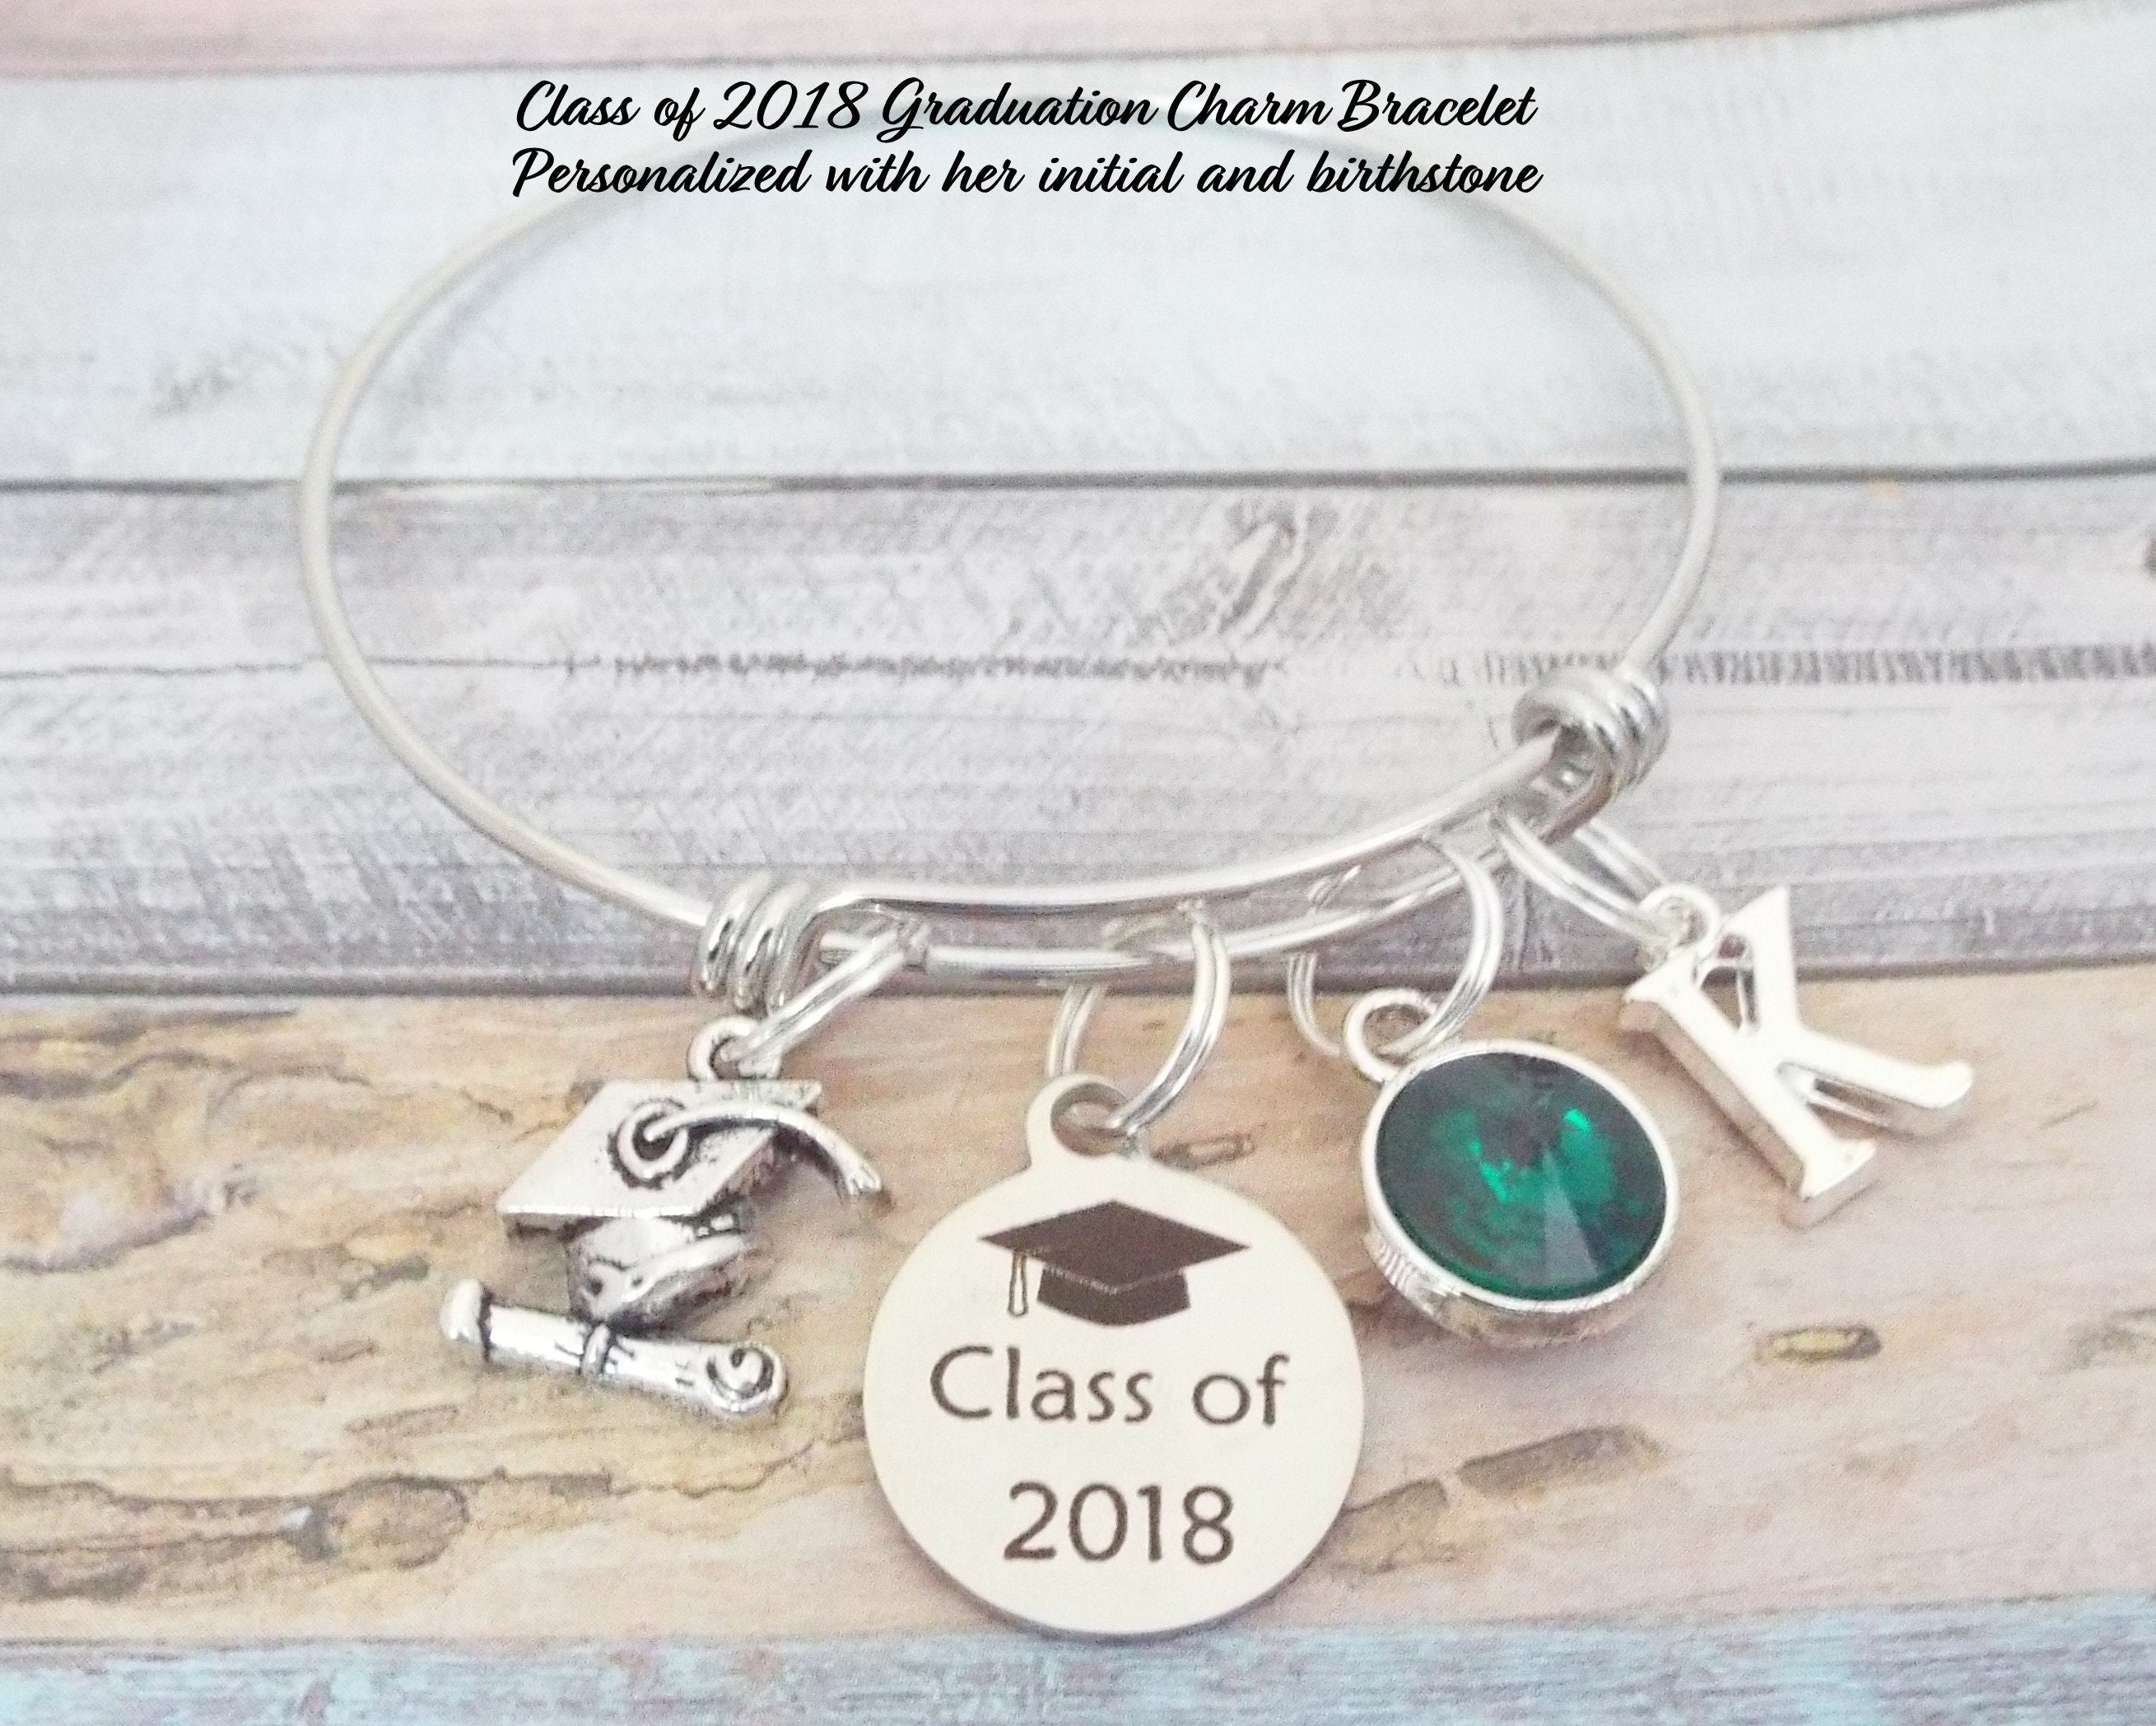 dangle pandora bead pendants hsd nurse occasions pbx grad heart for bling charm other gifts fits bracelet bracelets special graduation hat crystal silver az jewelry